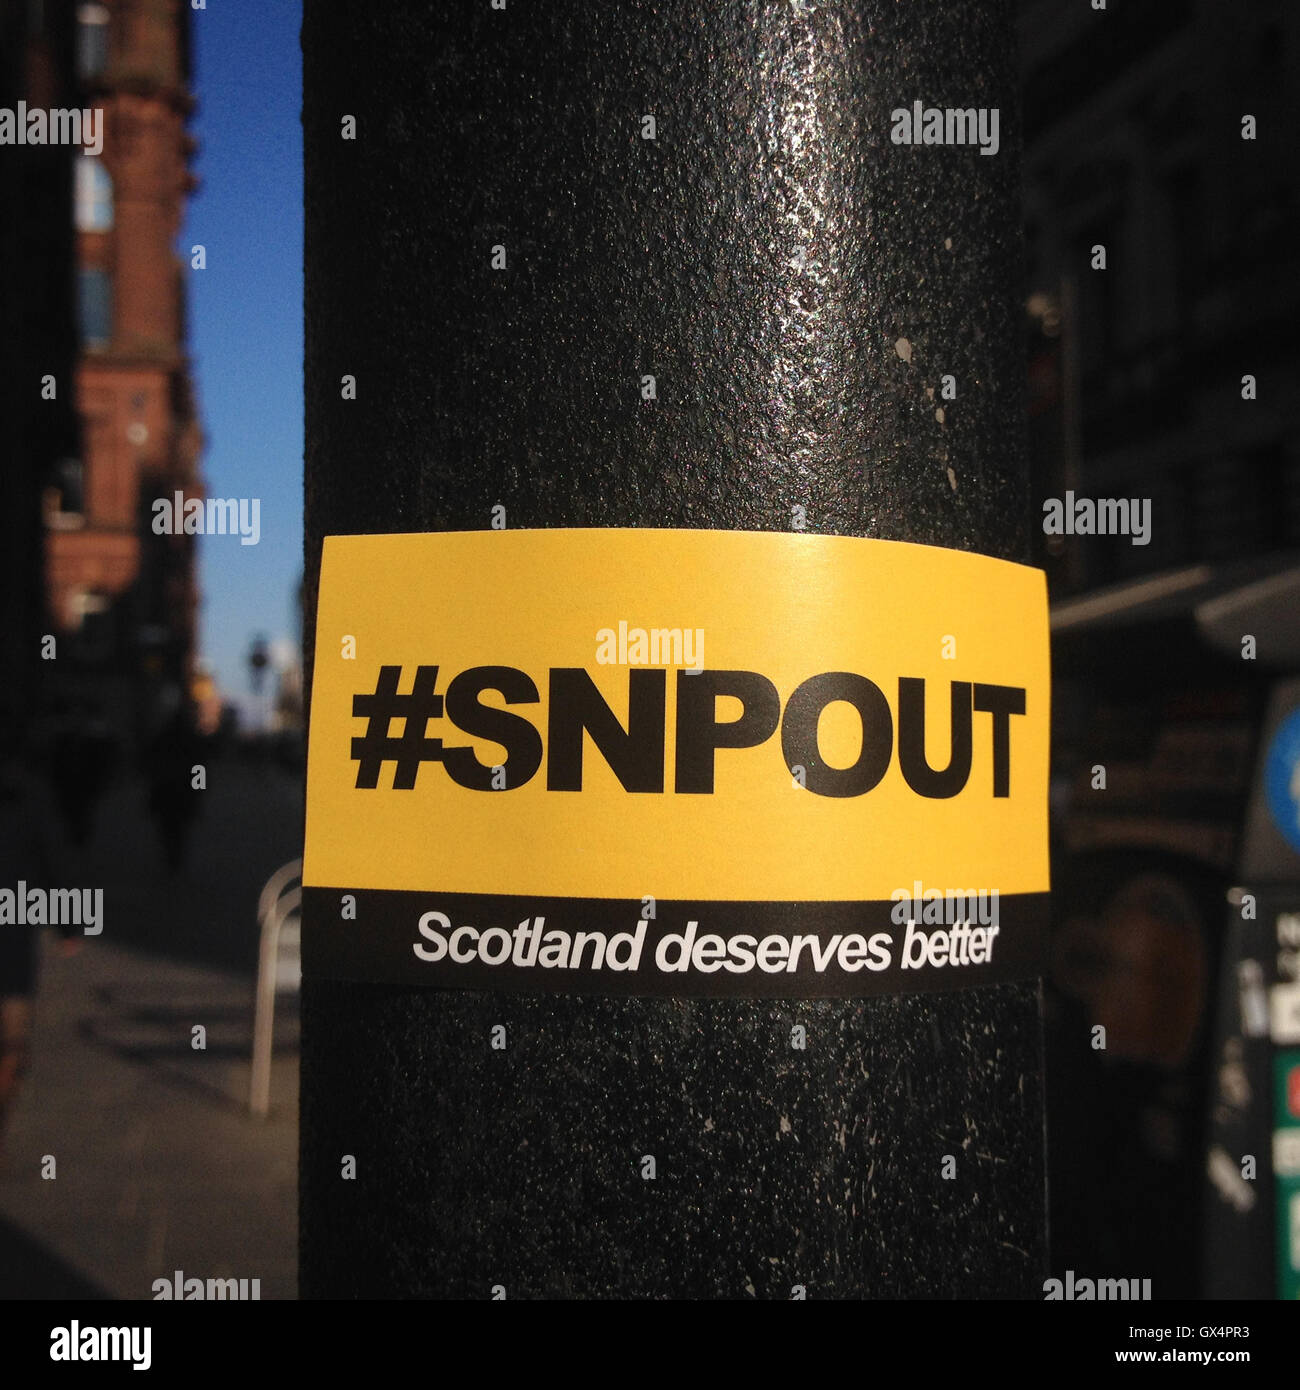 'SNP Out' stickers, calling for removal of Scottish National Party, in Glasgow, Scotland, on 10 April 2016. - Stock Image